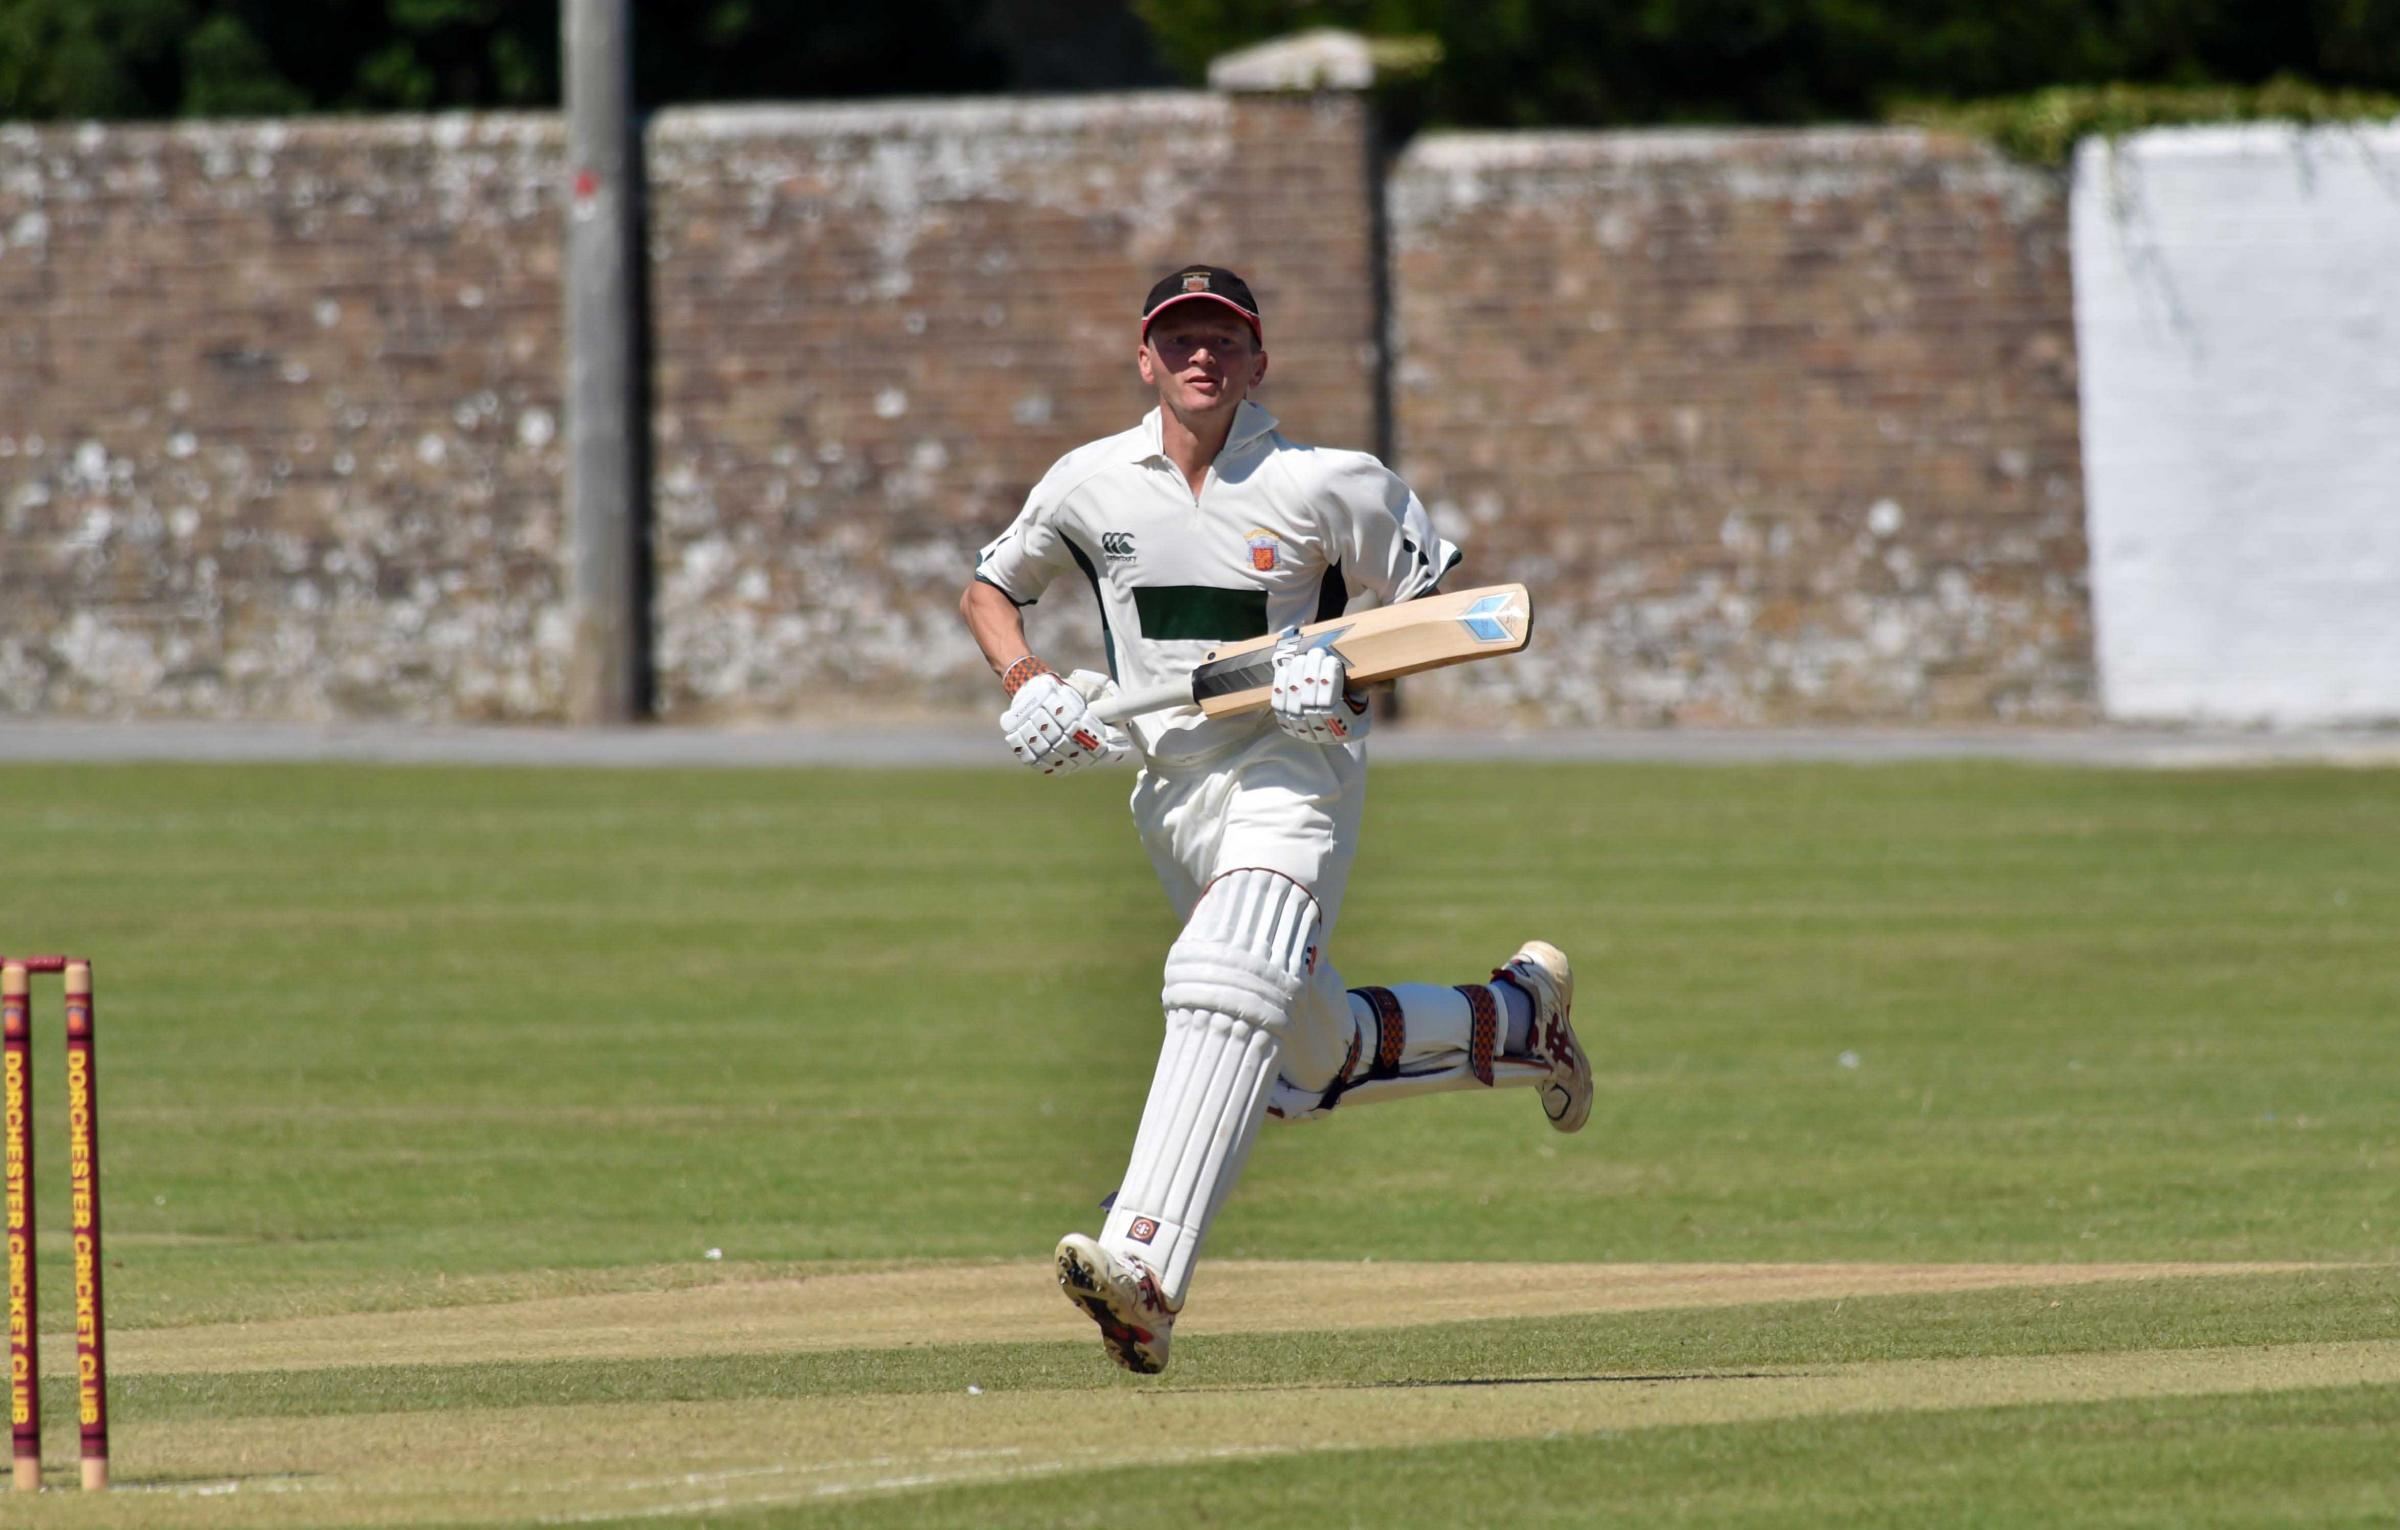 FIFTY: Mike Peak hit 57 for Dorchester against Swanage at Redlands. Picture GRAHAM HUNT/HG13353